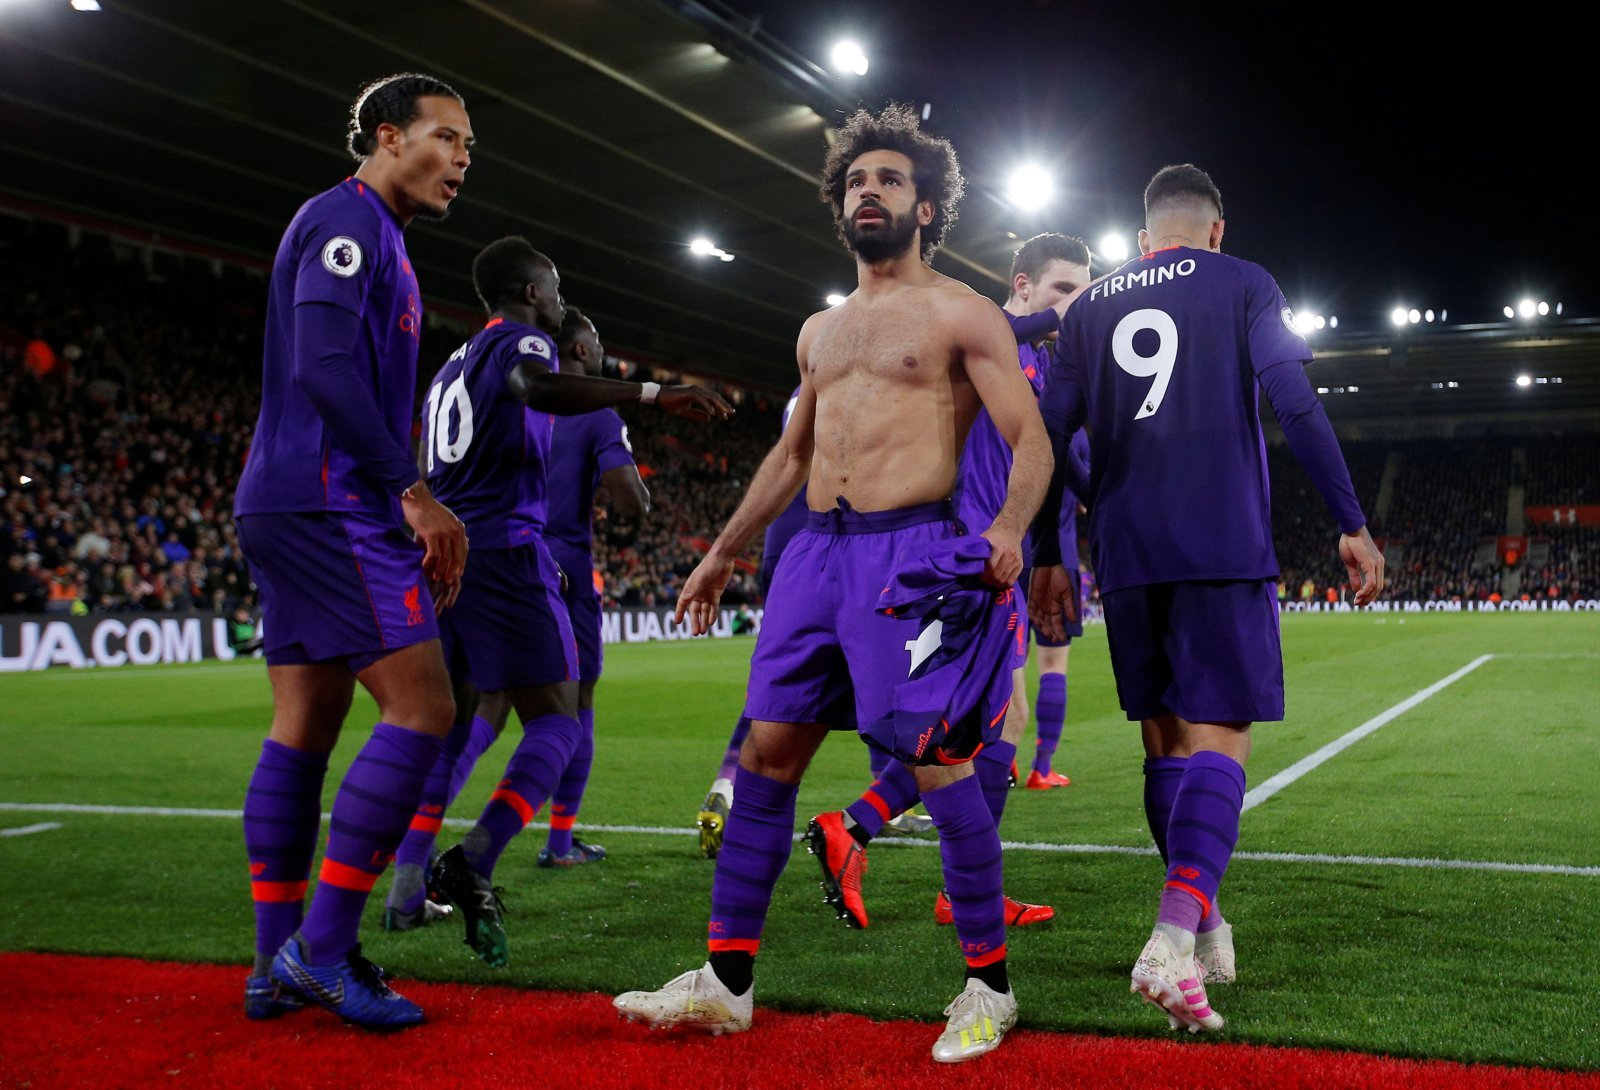 Liverpool: Mo Salah is proving to be one of the best signings in Premier League history